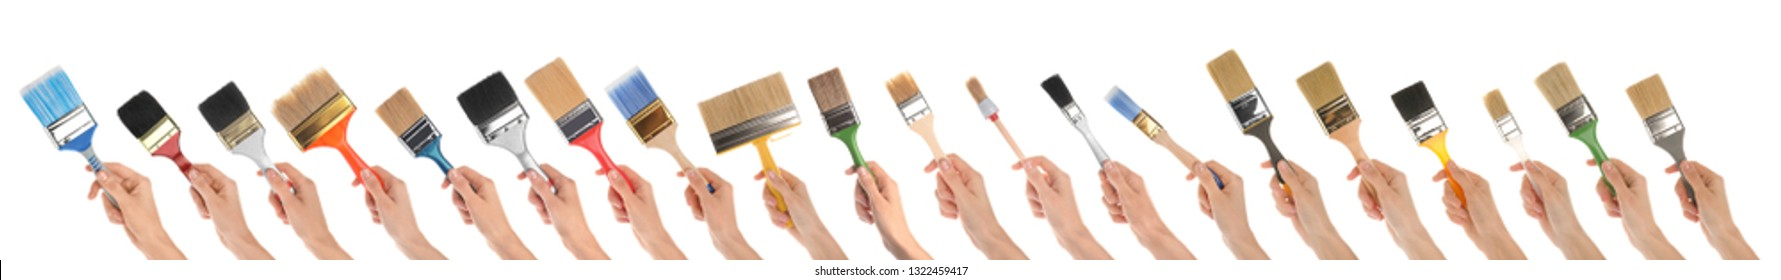 Set of women holding different clean paint brushes on white background, closeup